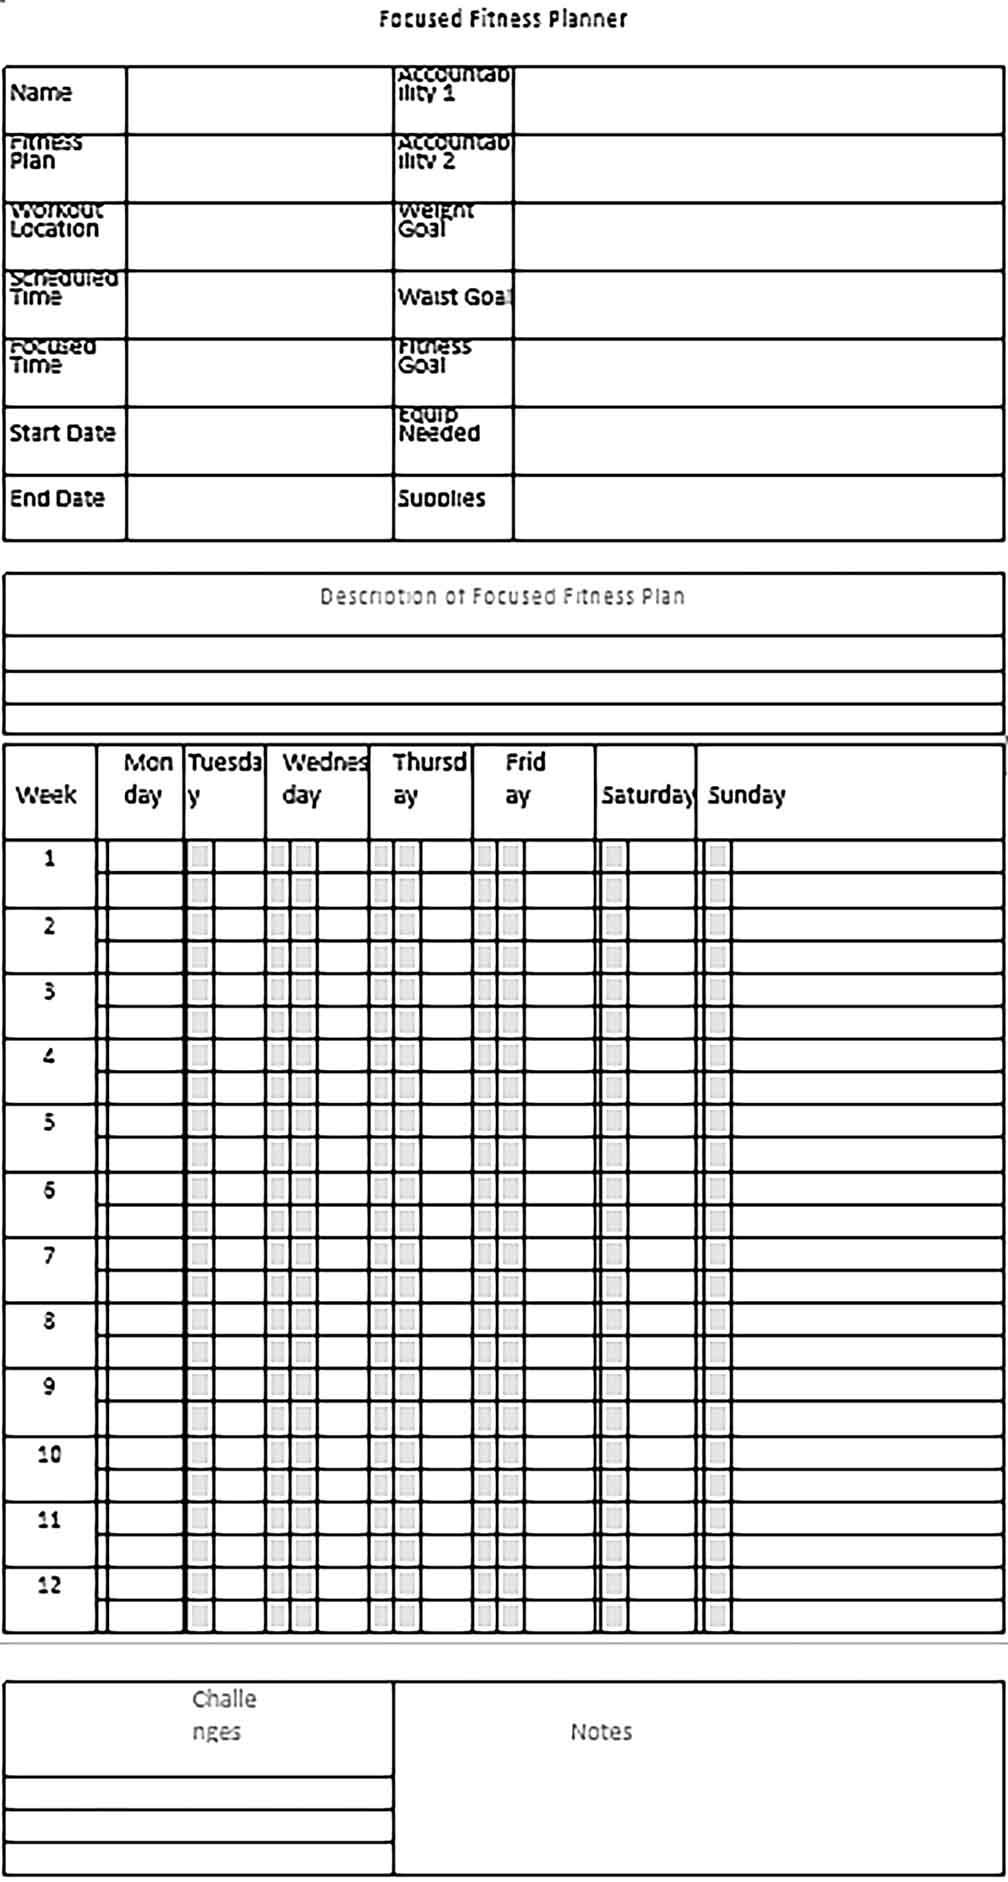 Template blank fitness schedule Sample